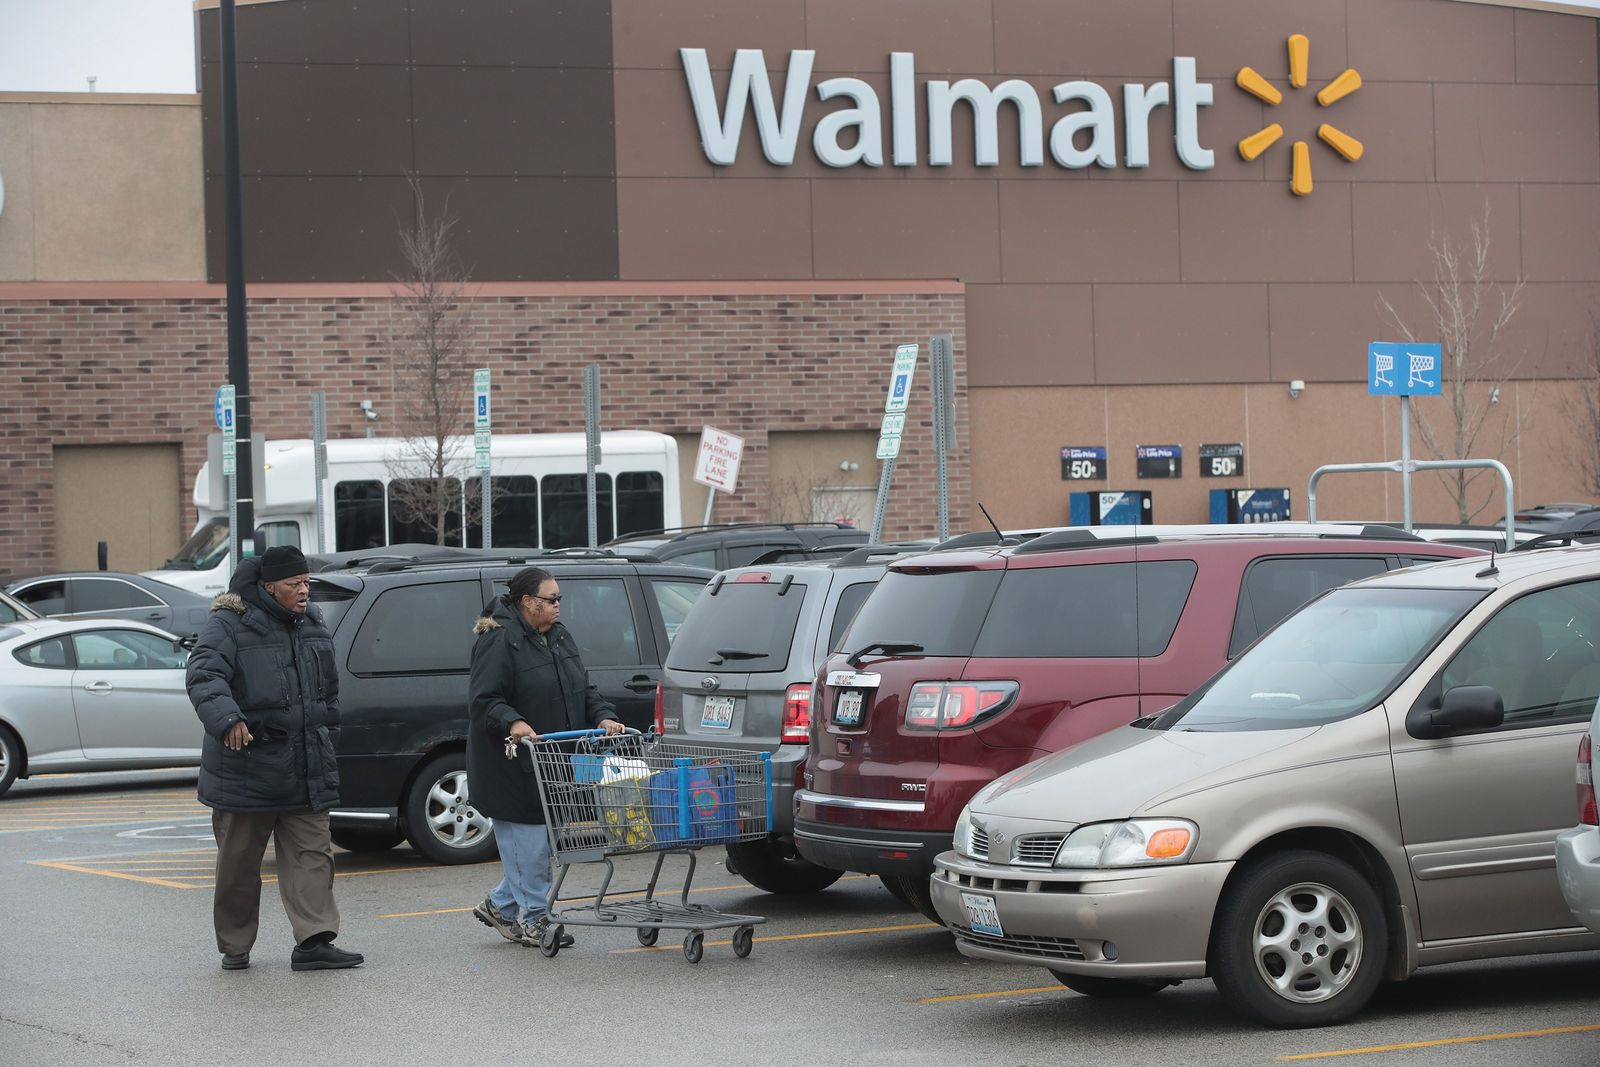 US-WAL-MART-ANNOUNCES-PLAN-TO-CREATE-10,000-JOBS-IN-U.S.-IN-2017